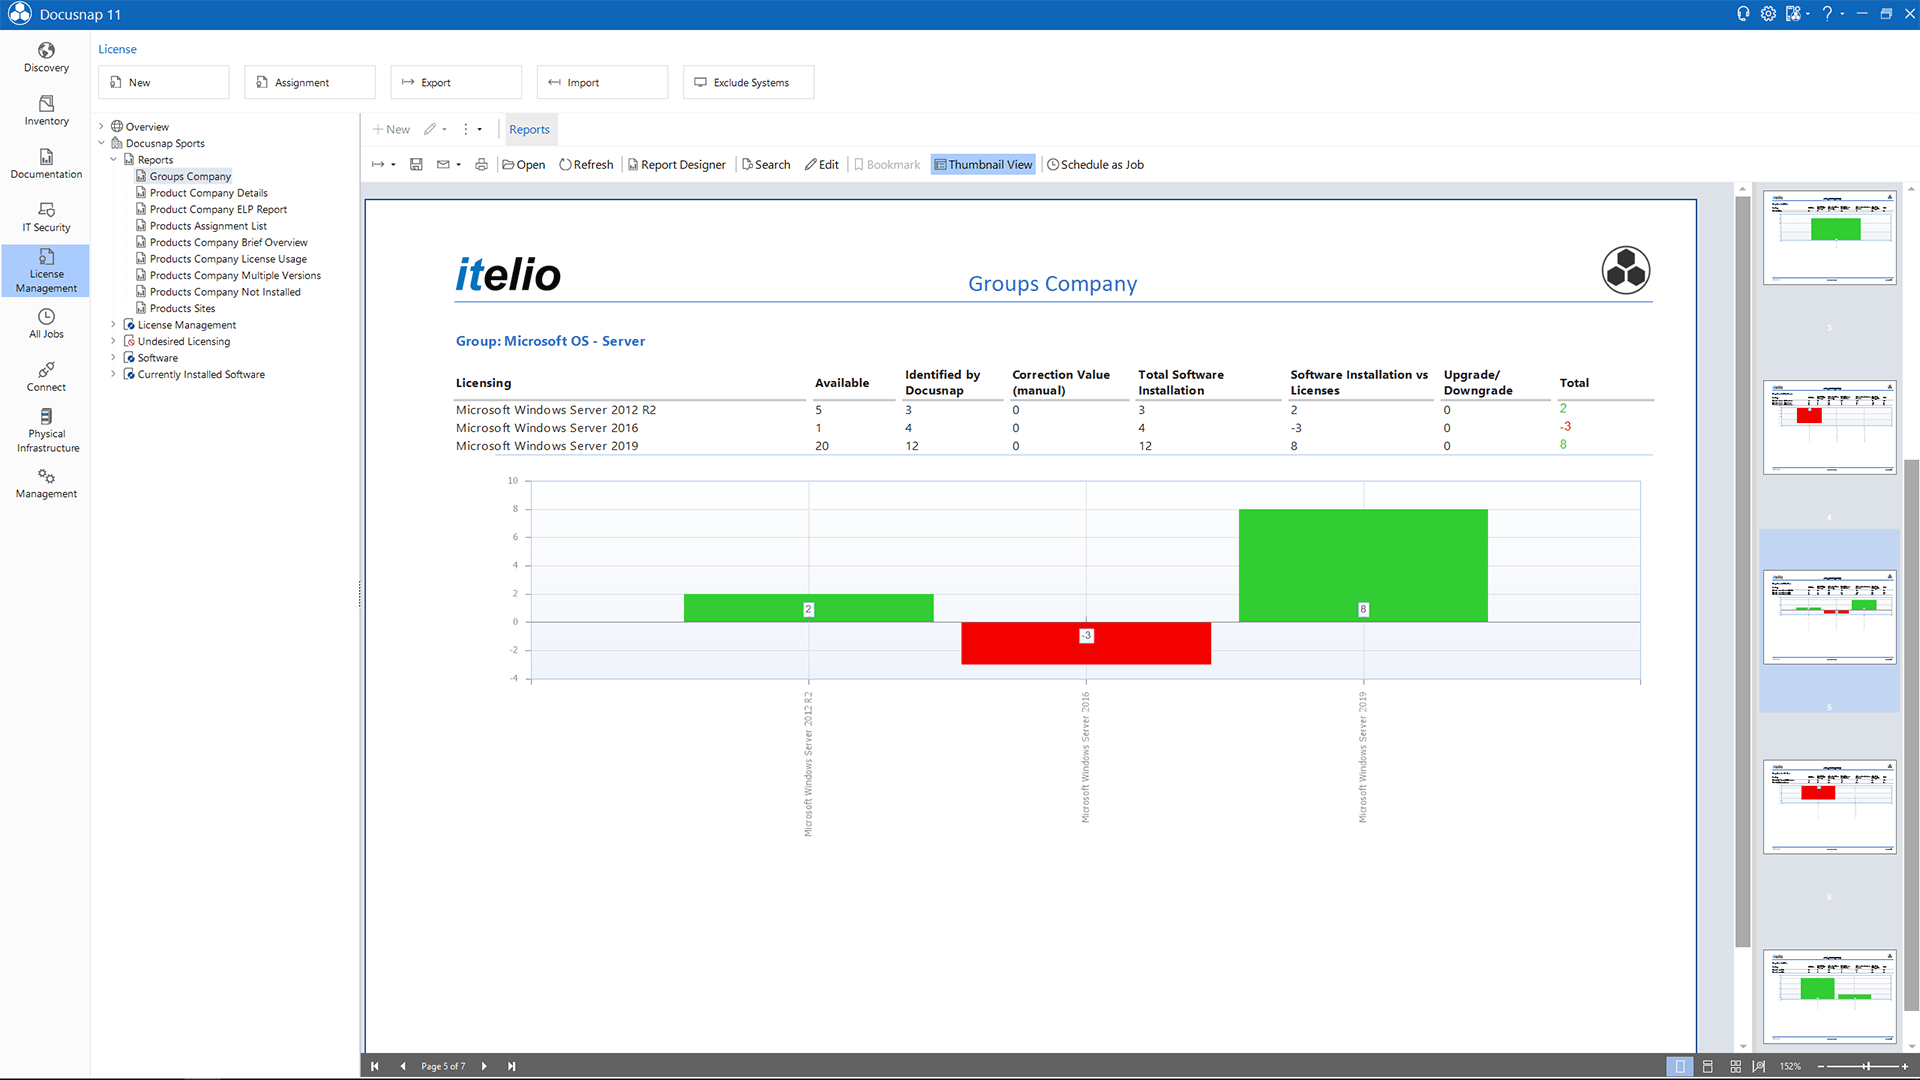 Screenshot: Report showing a license evaluation summary for the entire company